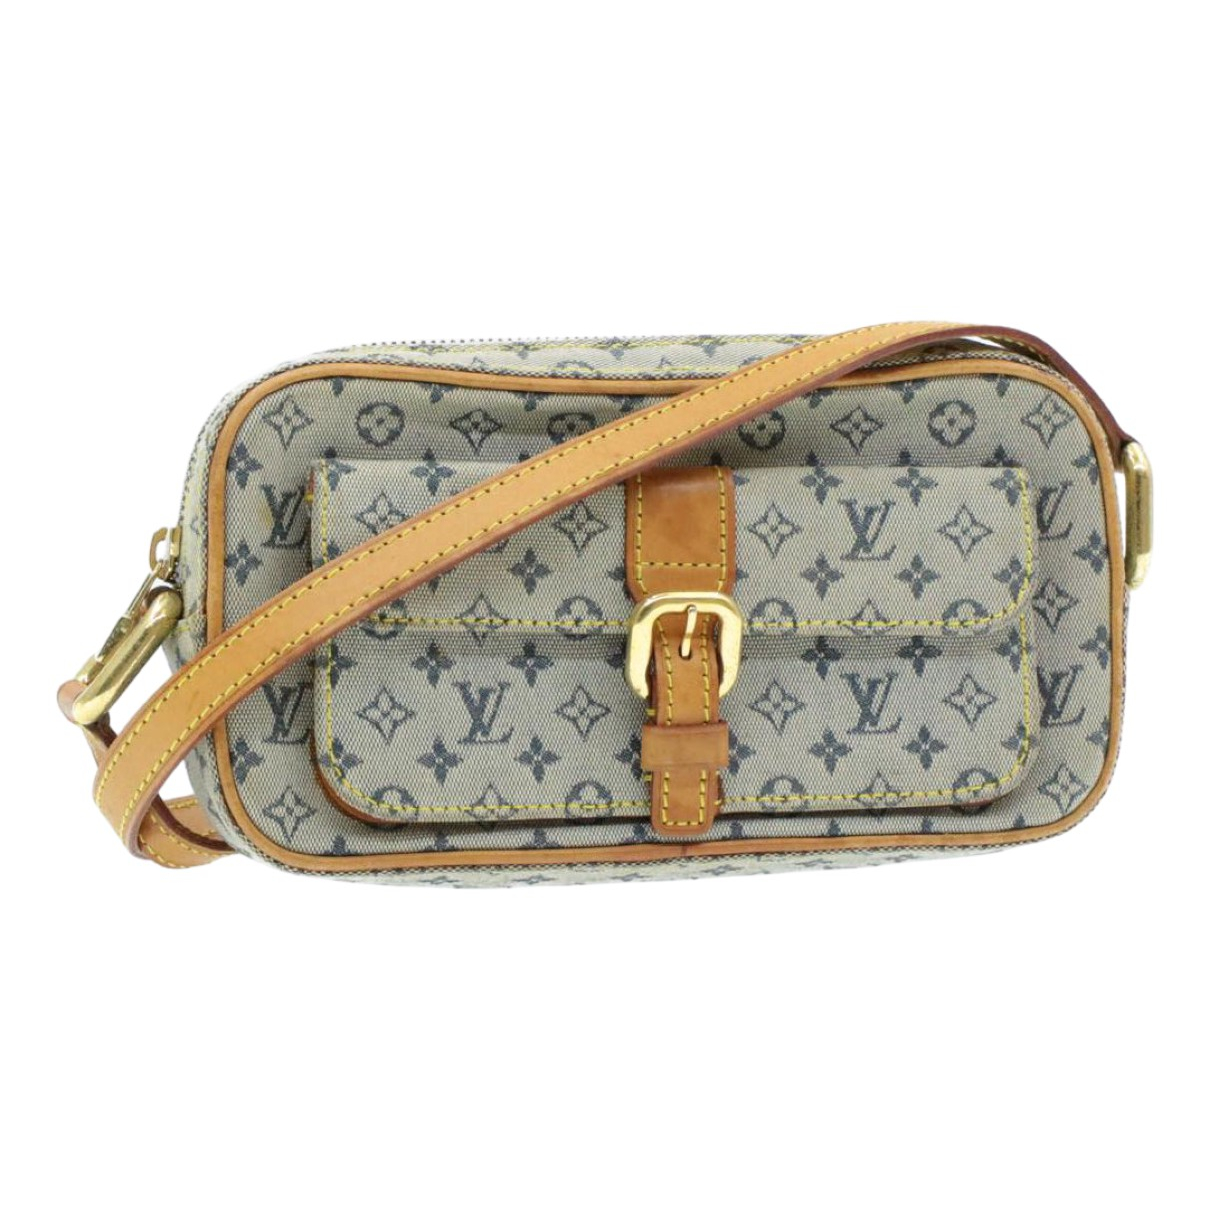 Louis Vuitton \N Blue Cloth handbag for Women \N